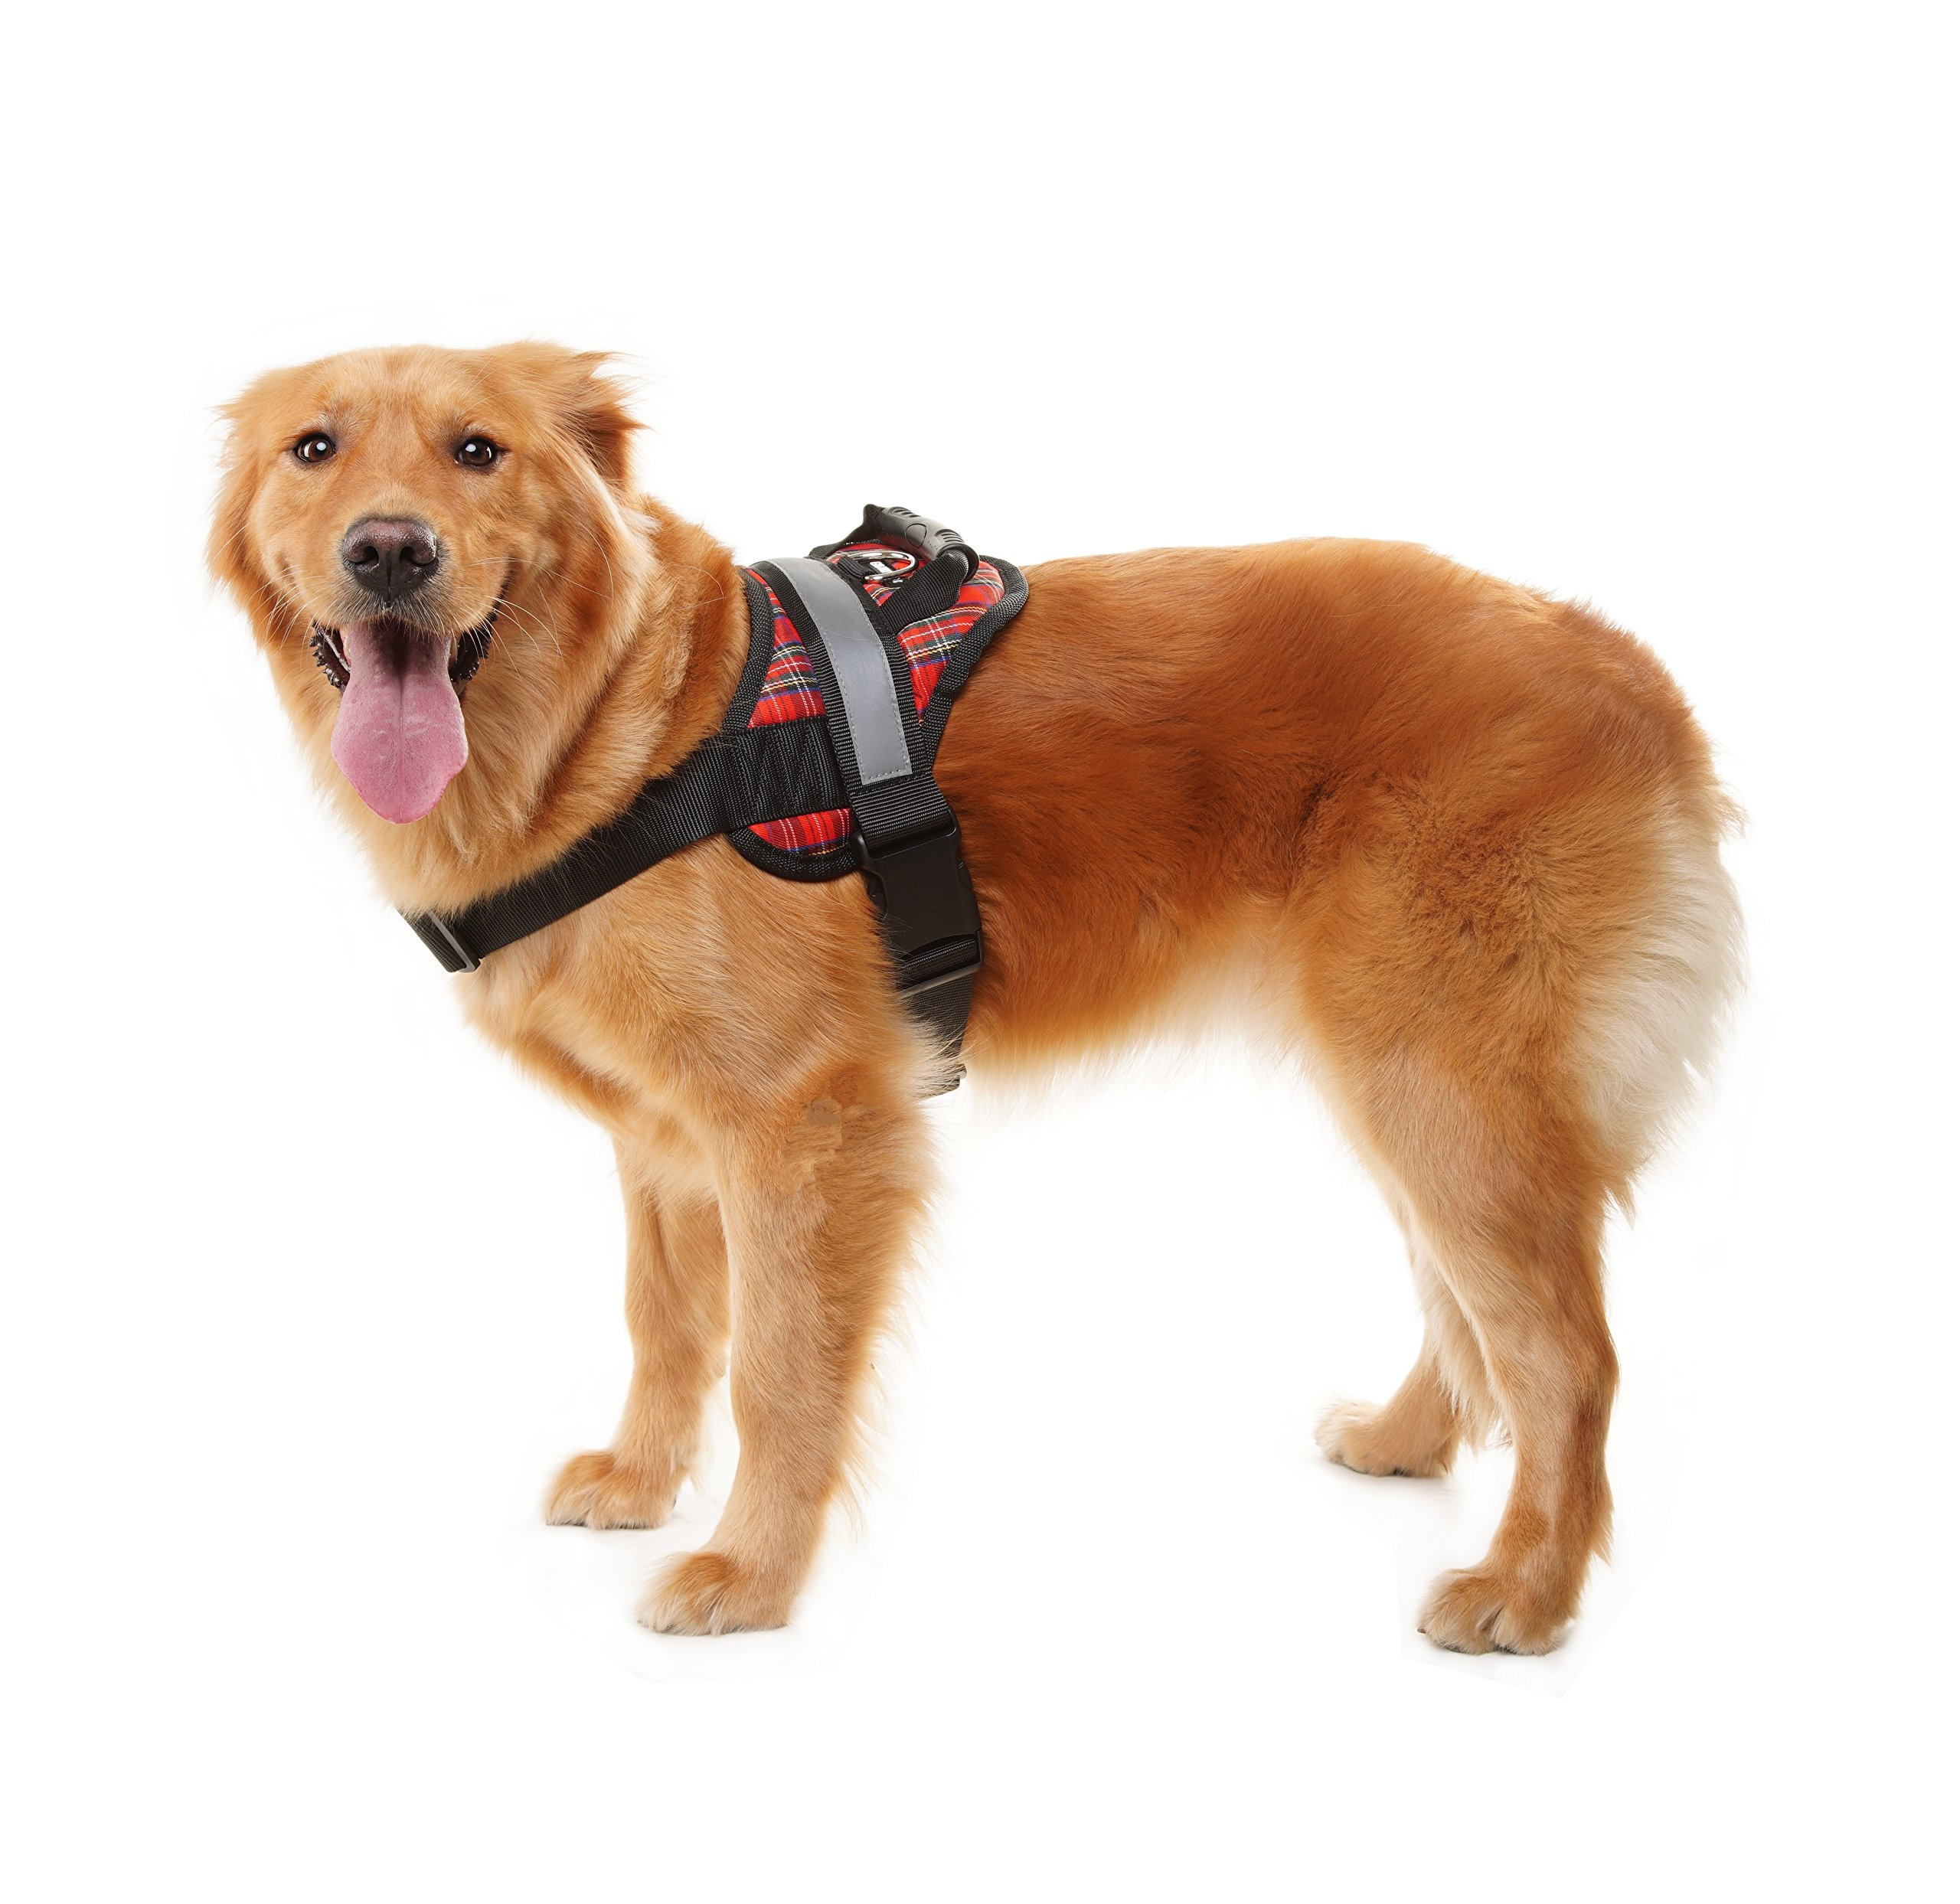 9133cg mAyL best rated in small animal harnesses & helpful customer reviews